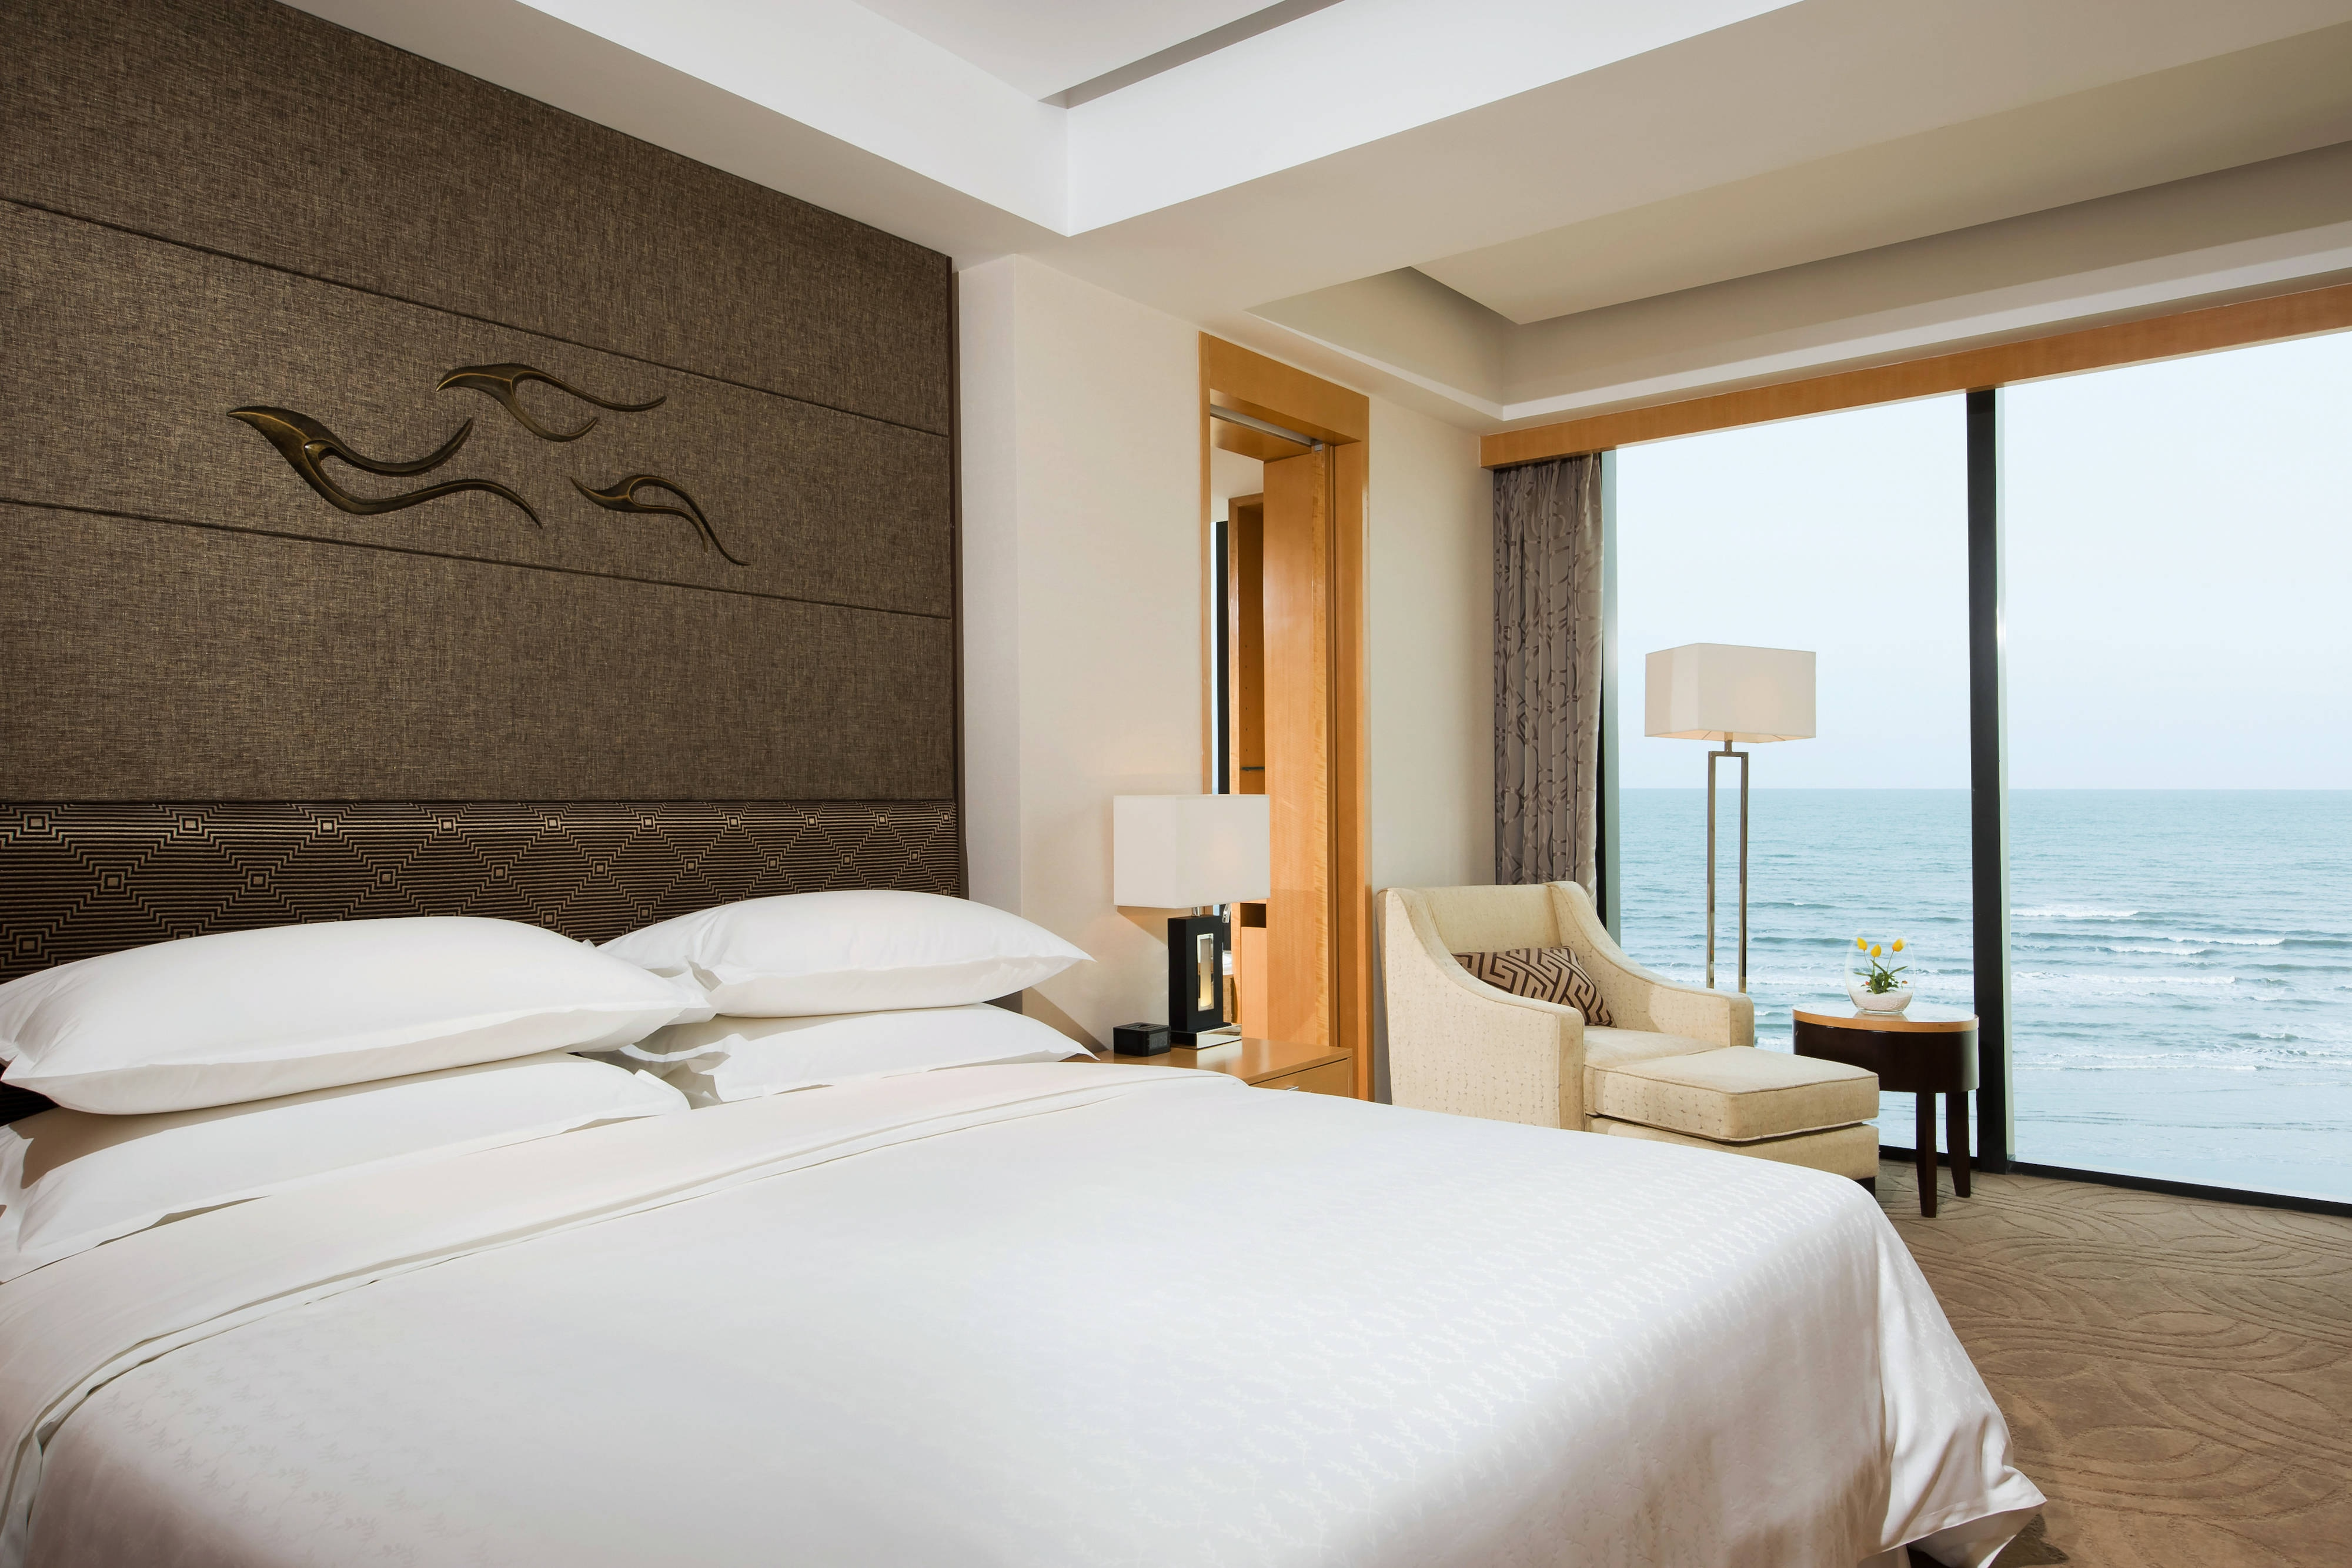 Sea View Deluxe King Room